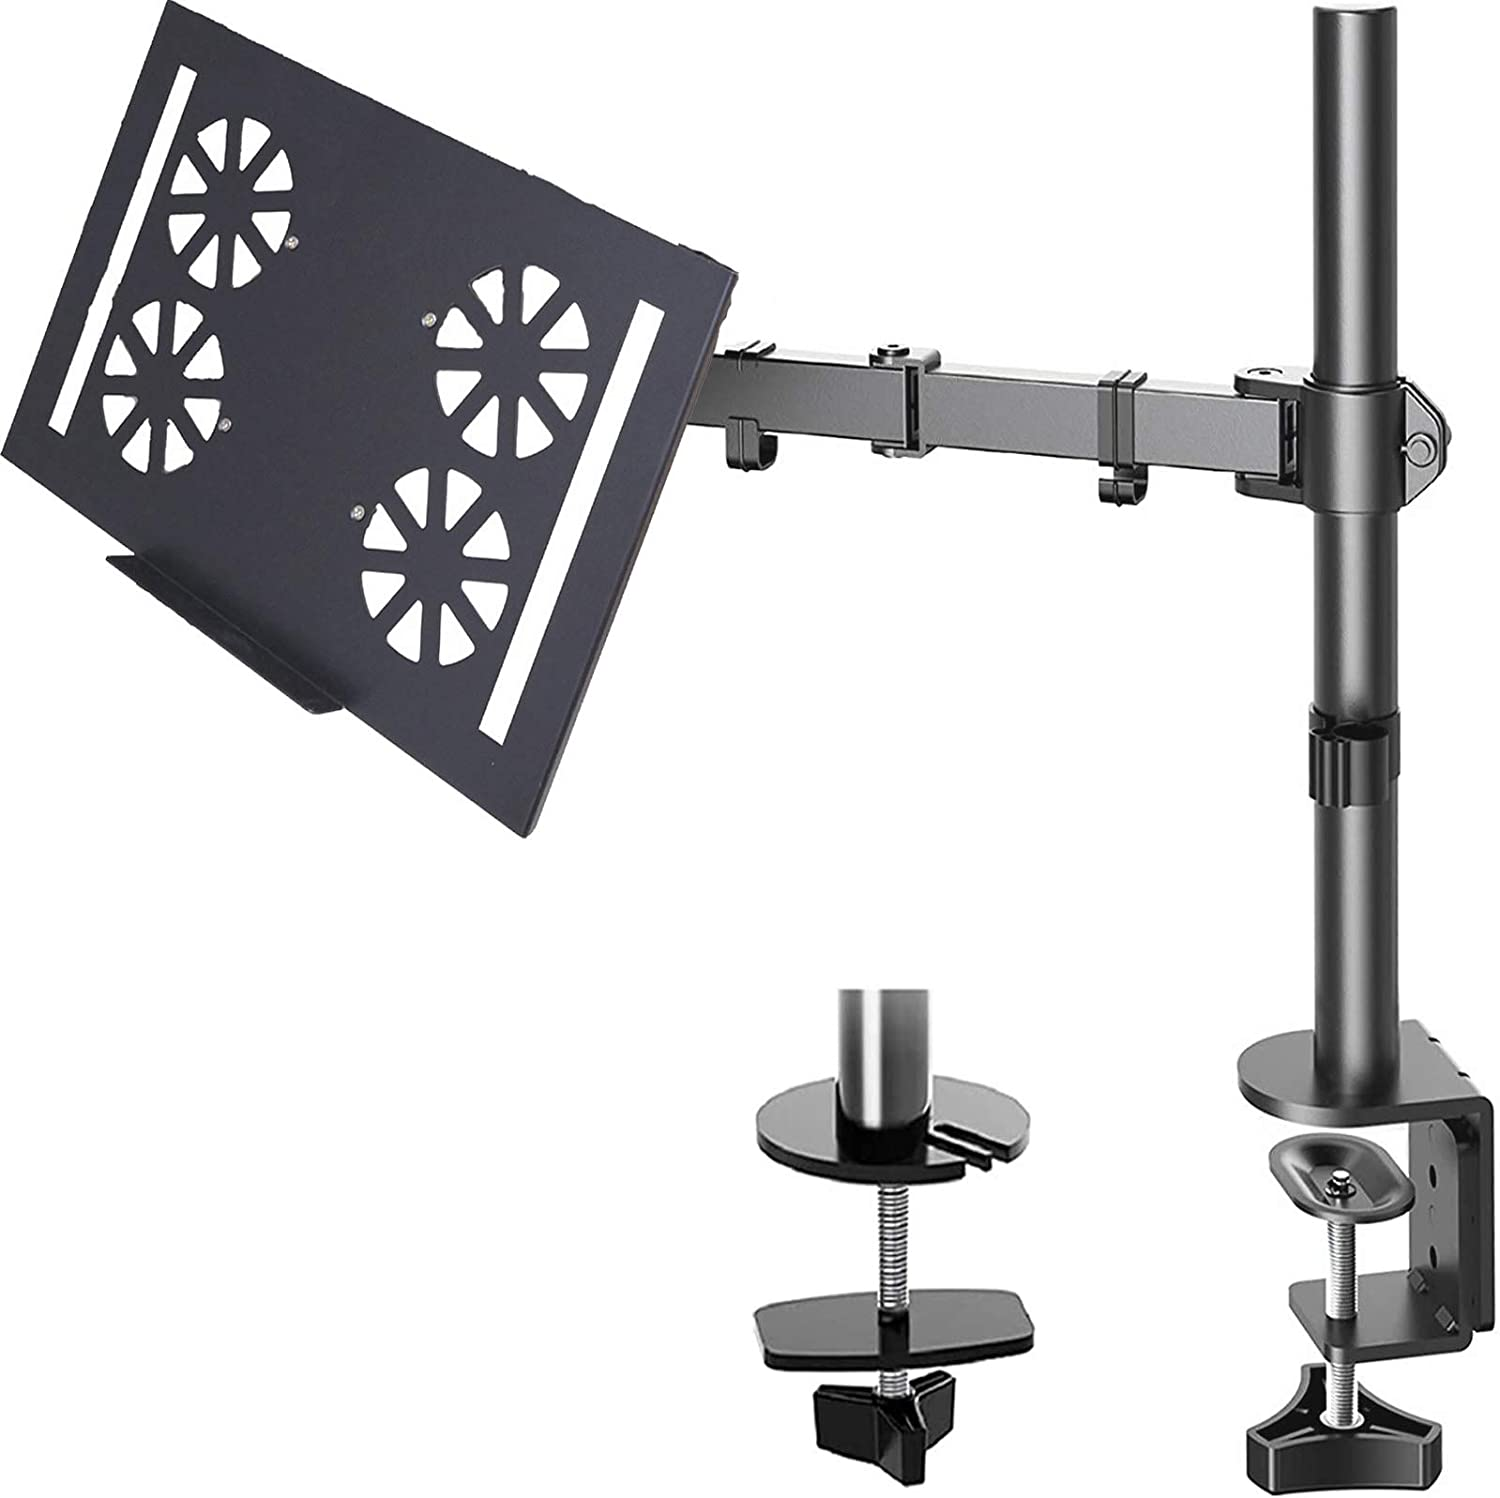 FORGING MOUNT Laptop Notebook Desk Mount Stand -Height Adjustable Single Monitor Arm Mount with C Clamp, VESA 75,100mm for Alternative Laptop 12-19